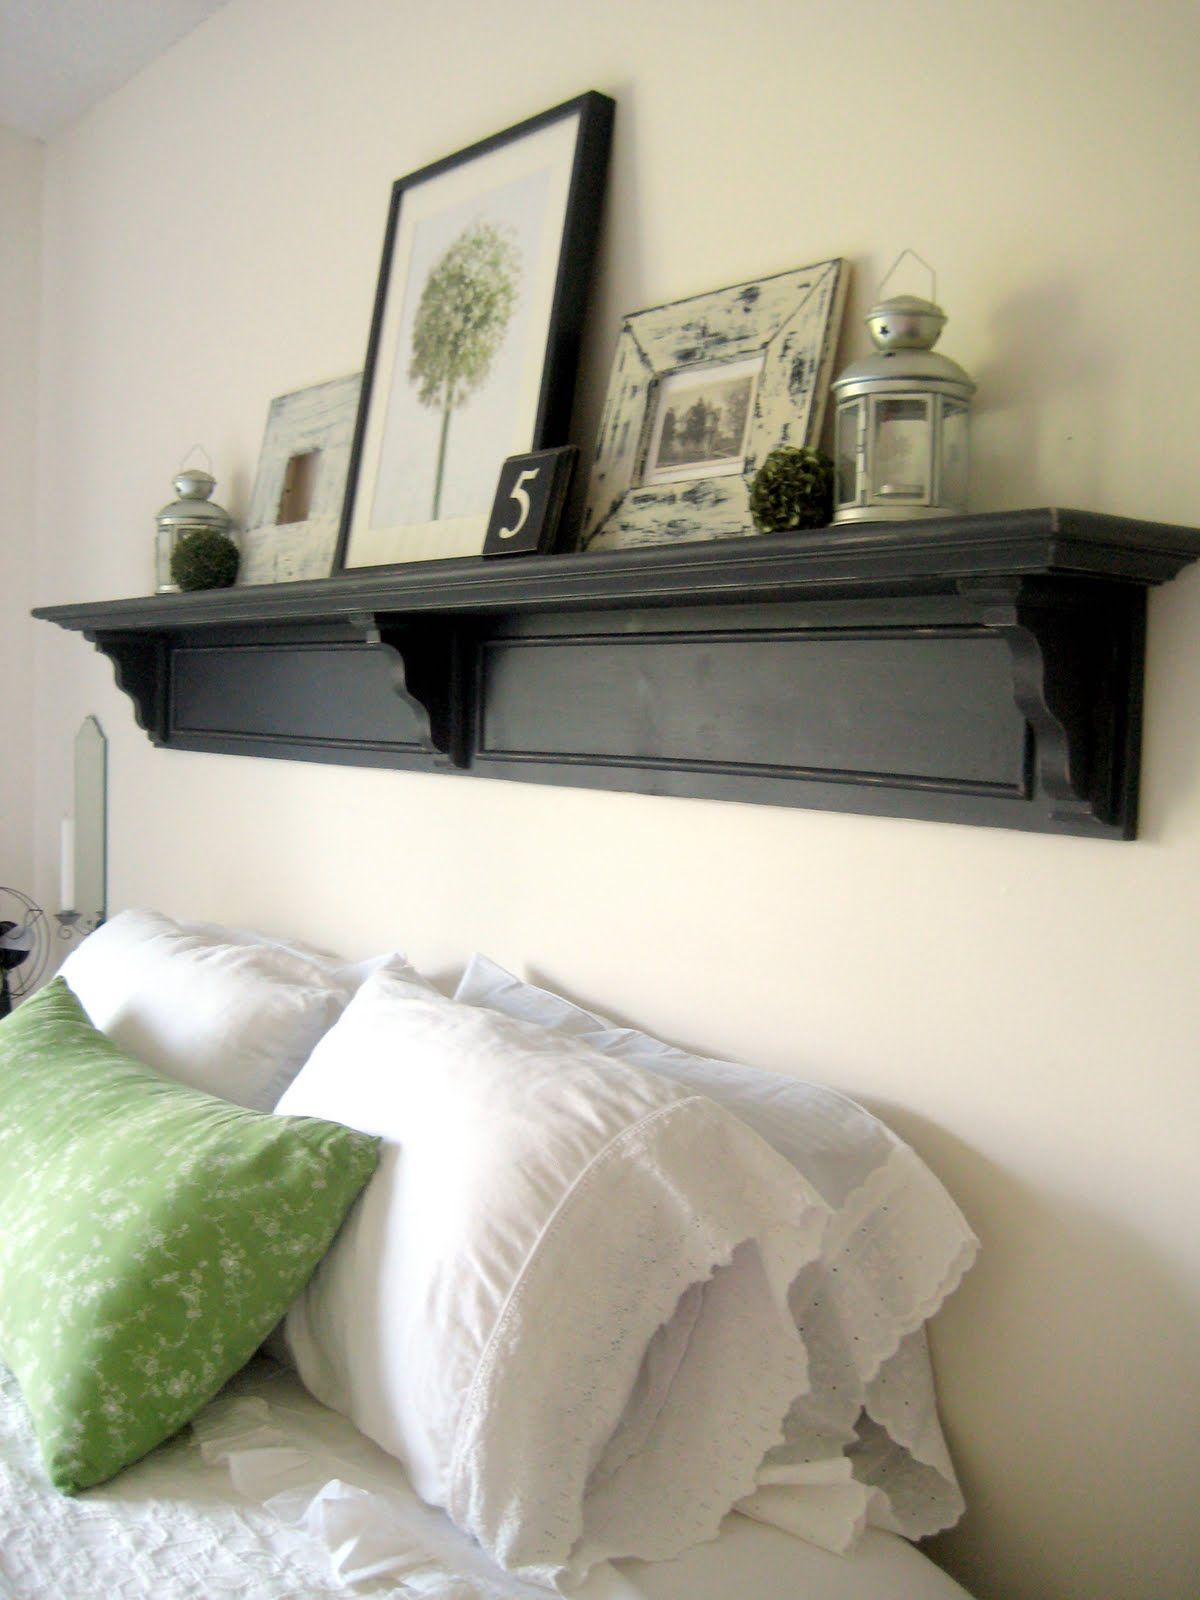 Master bedroom wall decor diy  or a shelf like this over the bed wiht stuff obvi better then this